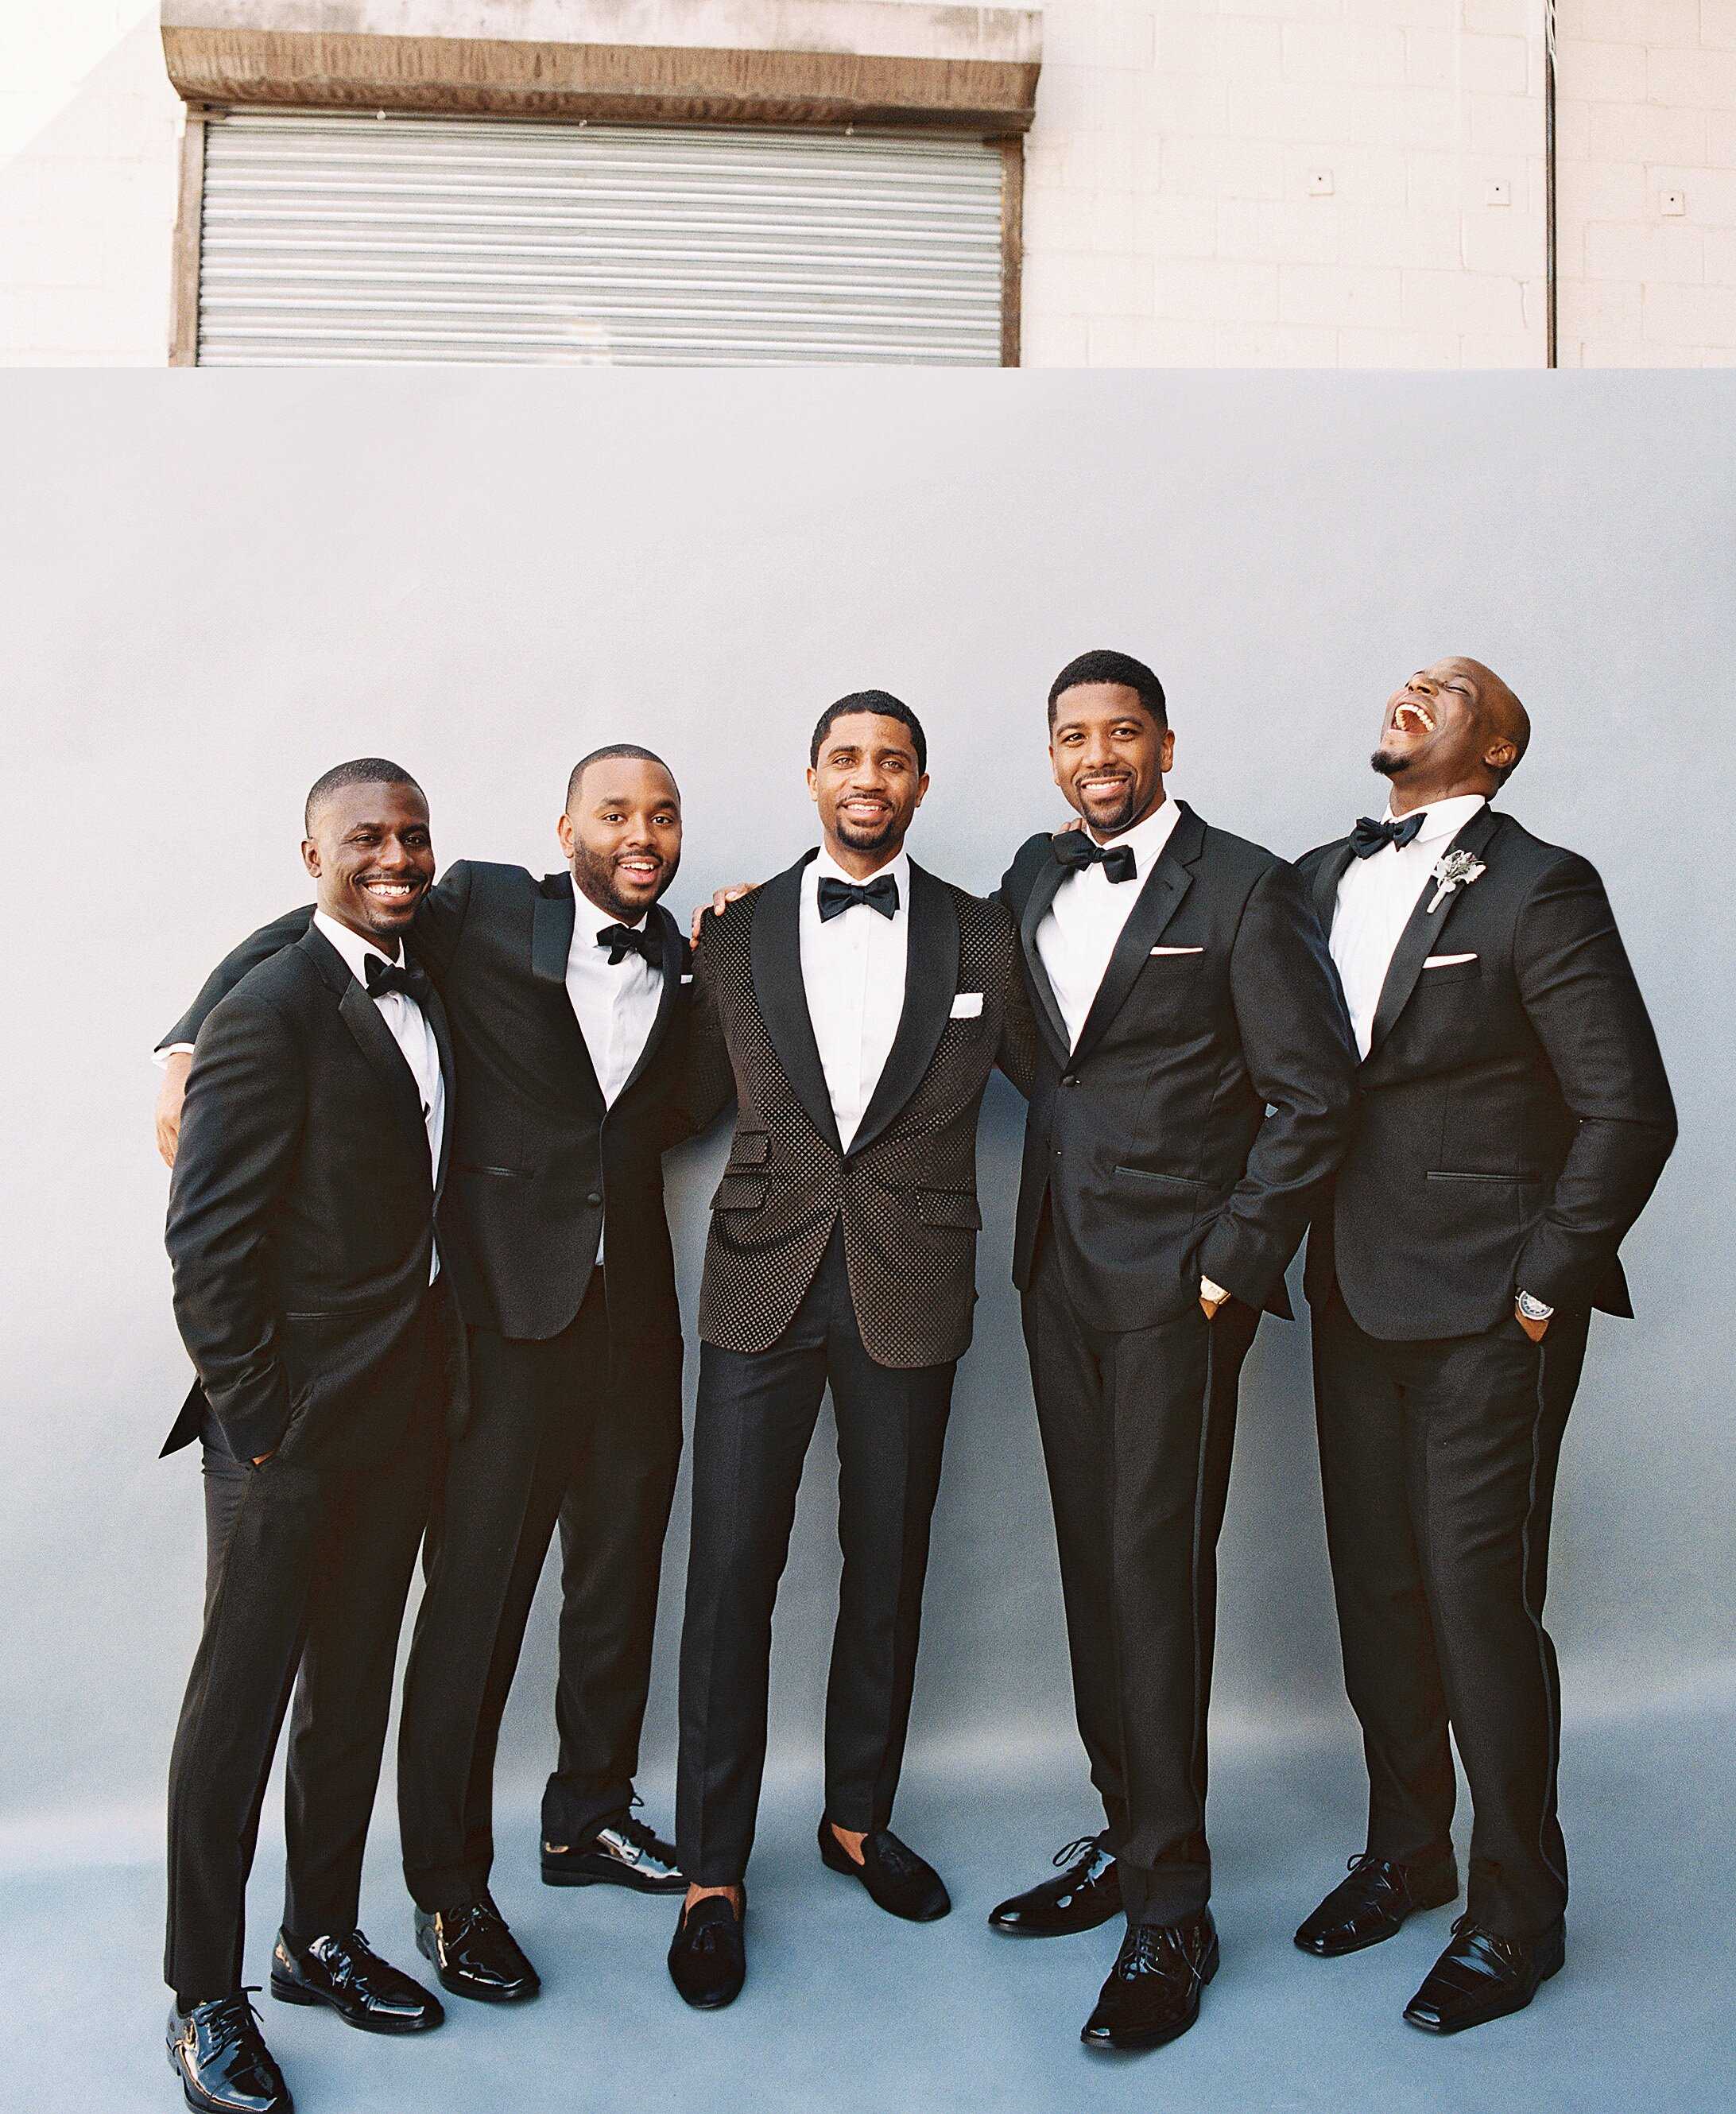 Should The Groom Wear A Suit Or A Tuxedo On The Wedding Day